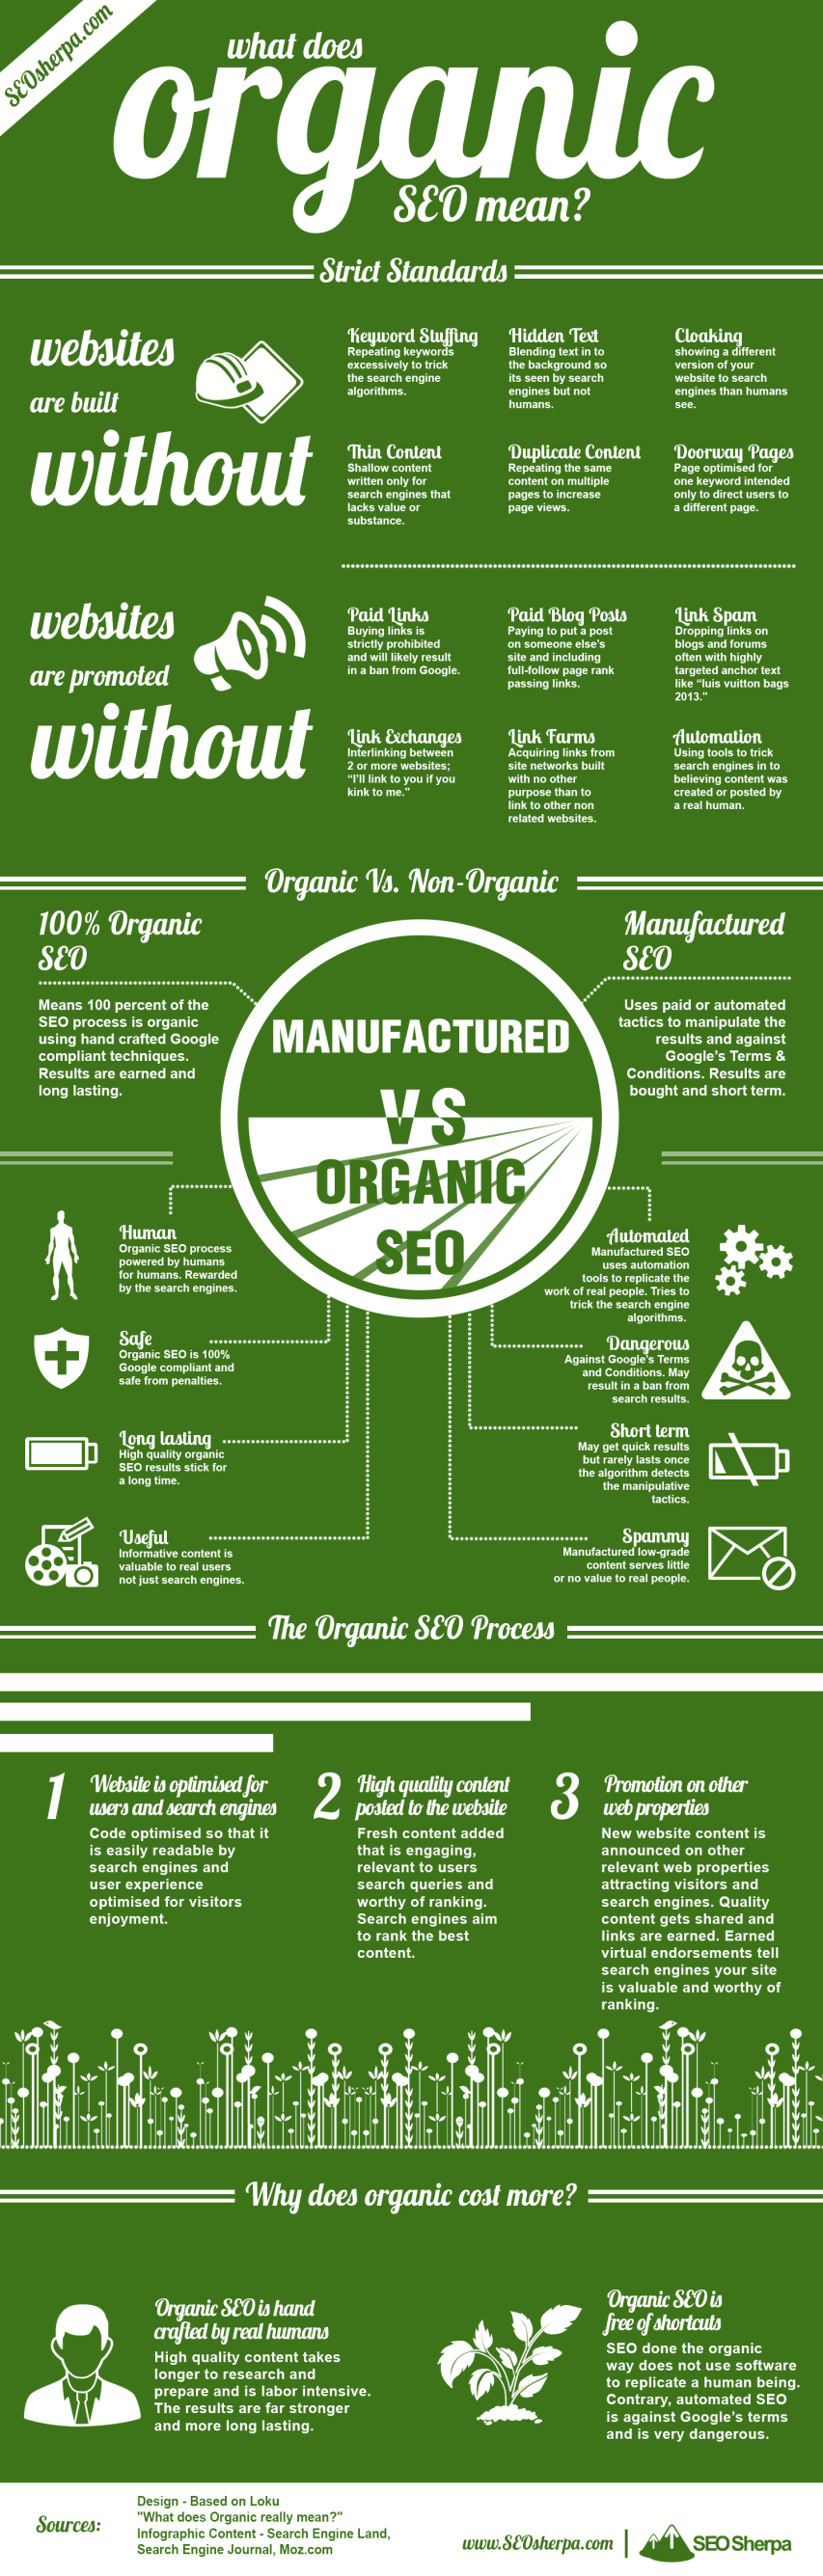 what-does-organic-seo-mean